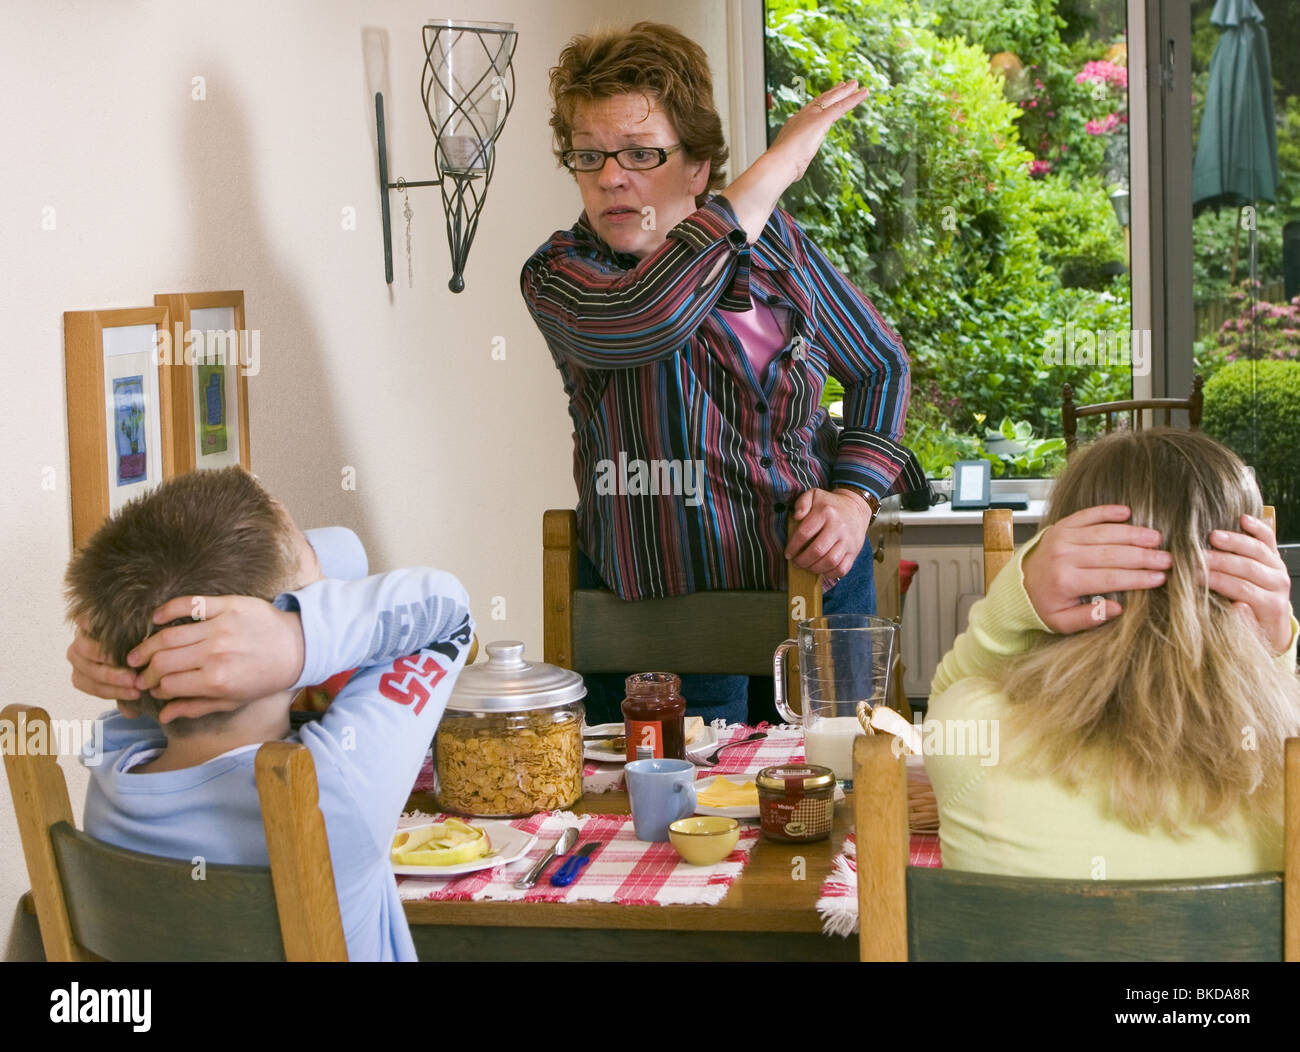 Child abuse at home: Mother smacking her childrenat breakfast table at home and looking very angry. SerieCVS417009 - Stock Image